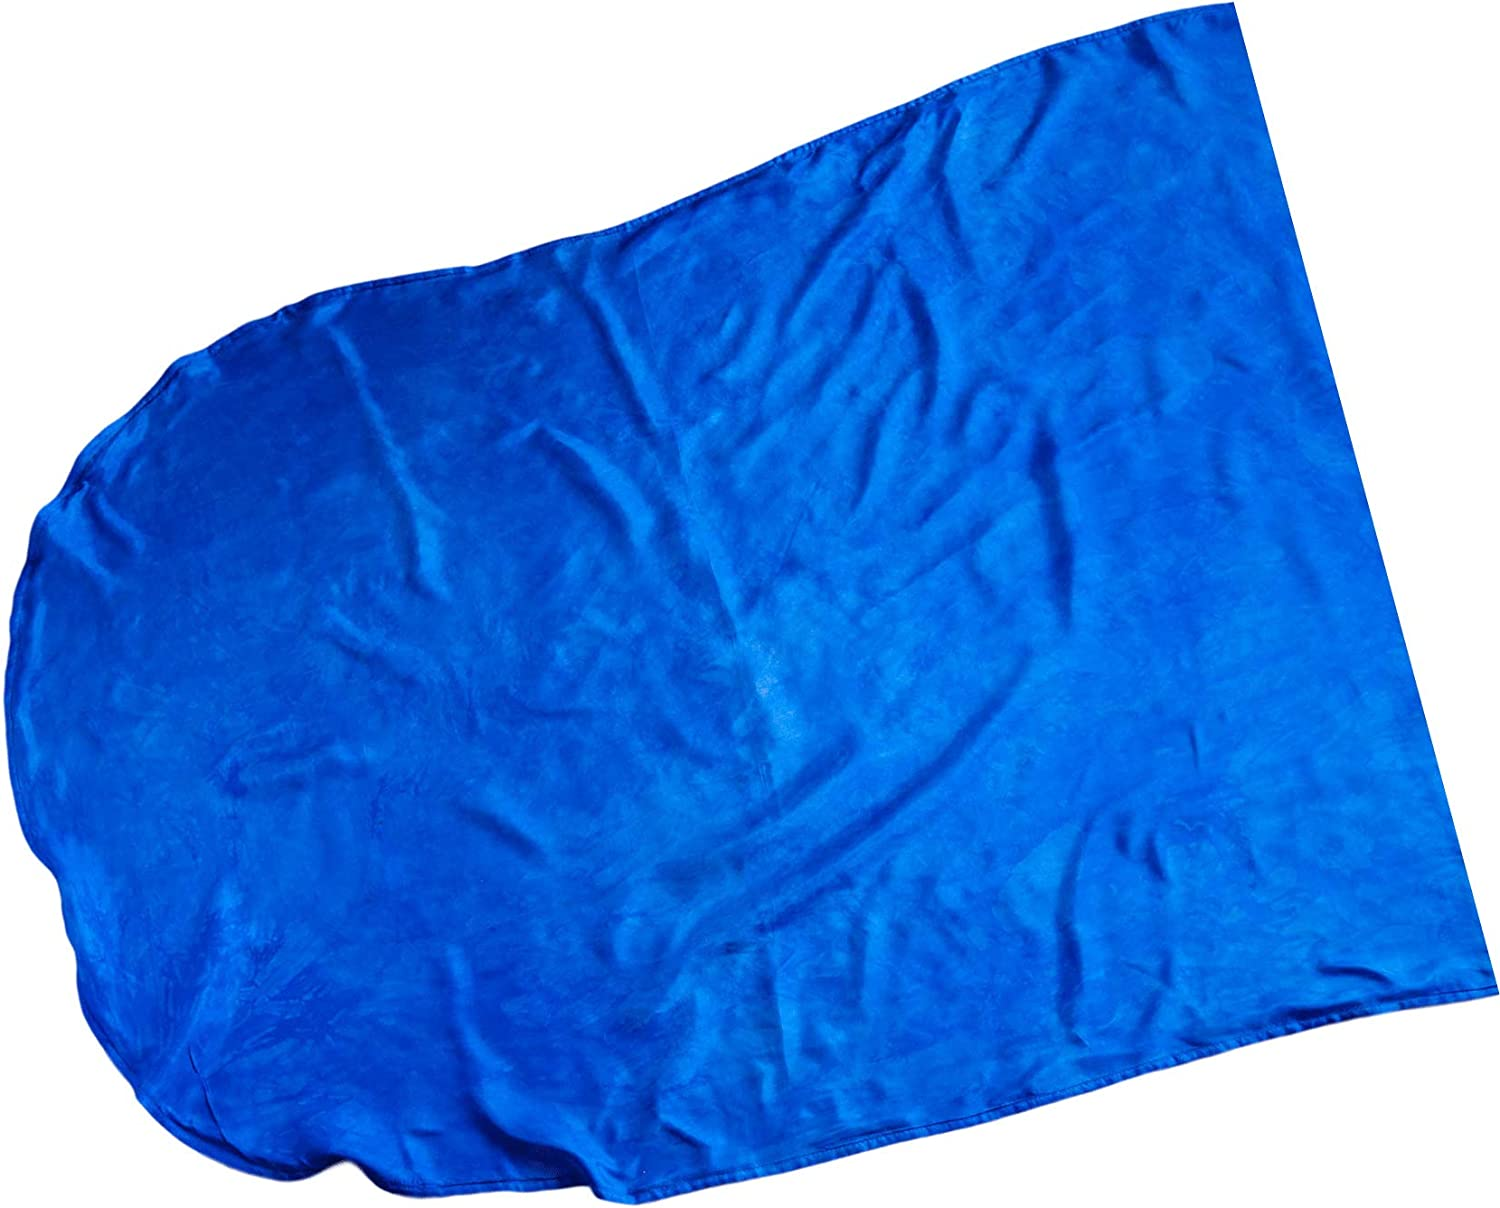 Lightweight 125g Choice of Colour 230 x 85cm JagBags Pure Silk Mummy Shaped Sleeping Bag Liner Matching Stuff Sack